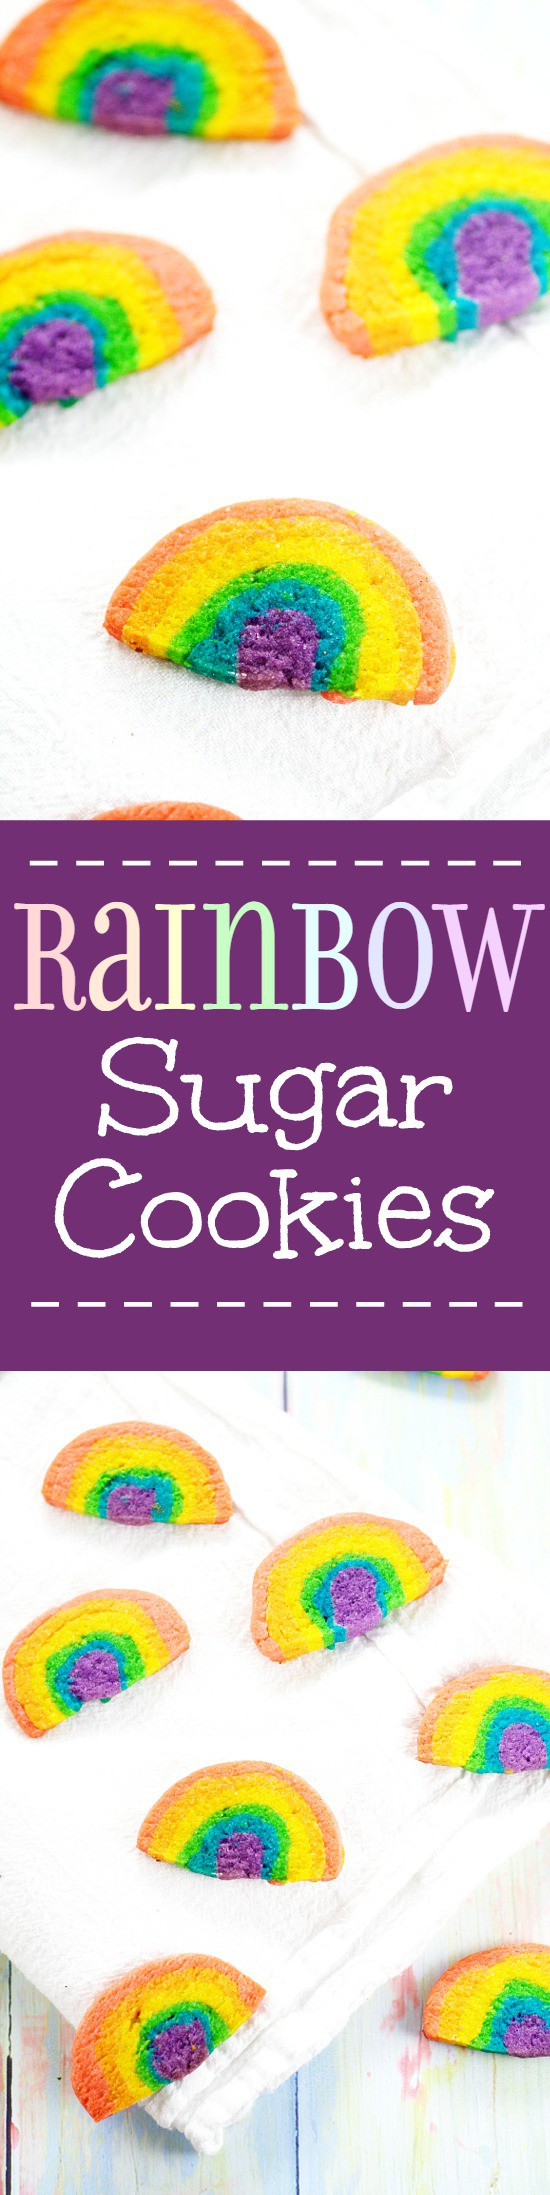 Rainbow Sugar Cookies. Adorable slice-and-bake Rainbow Sugar Cookies ...